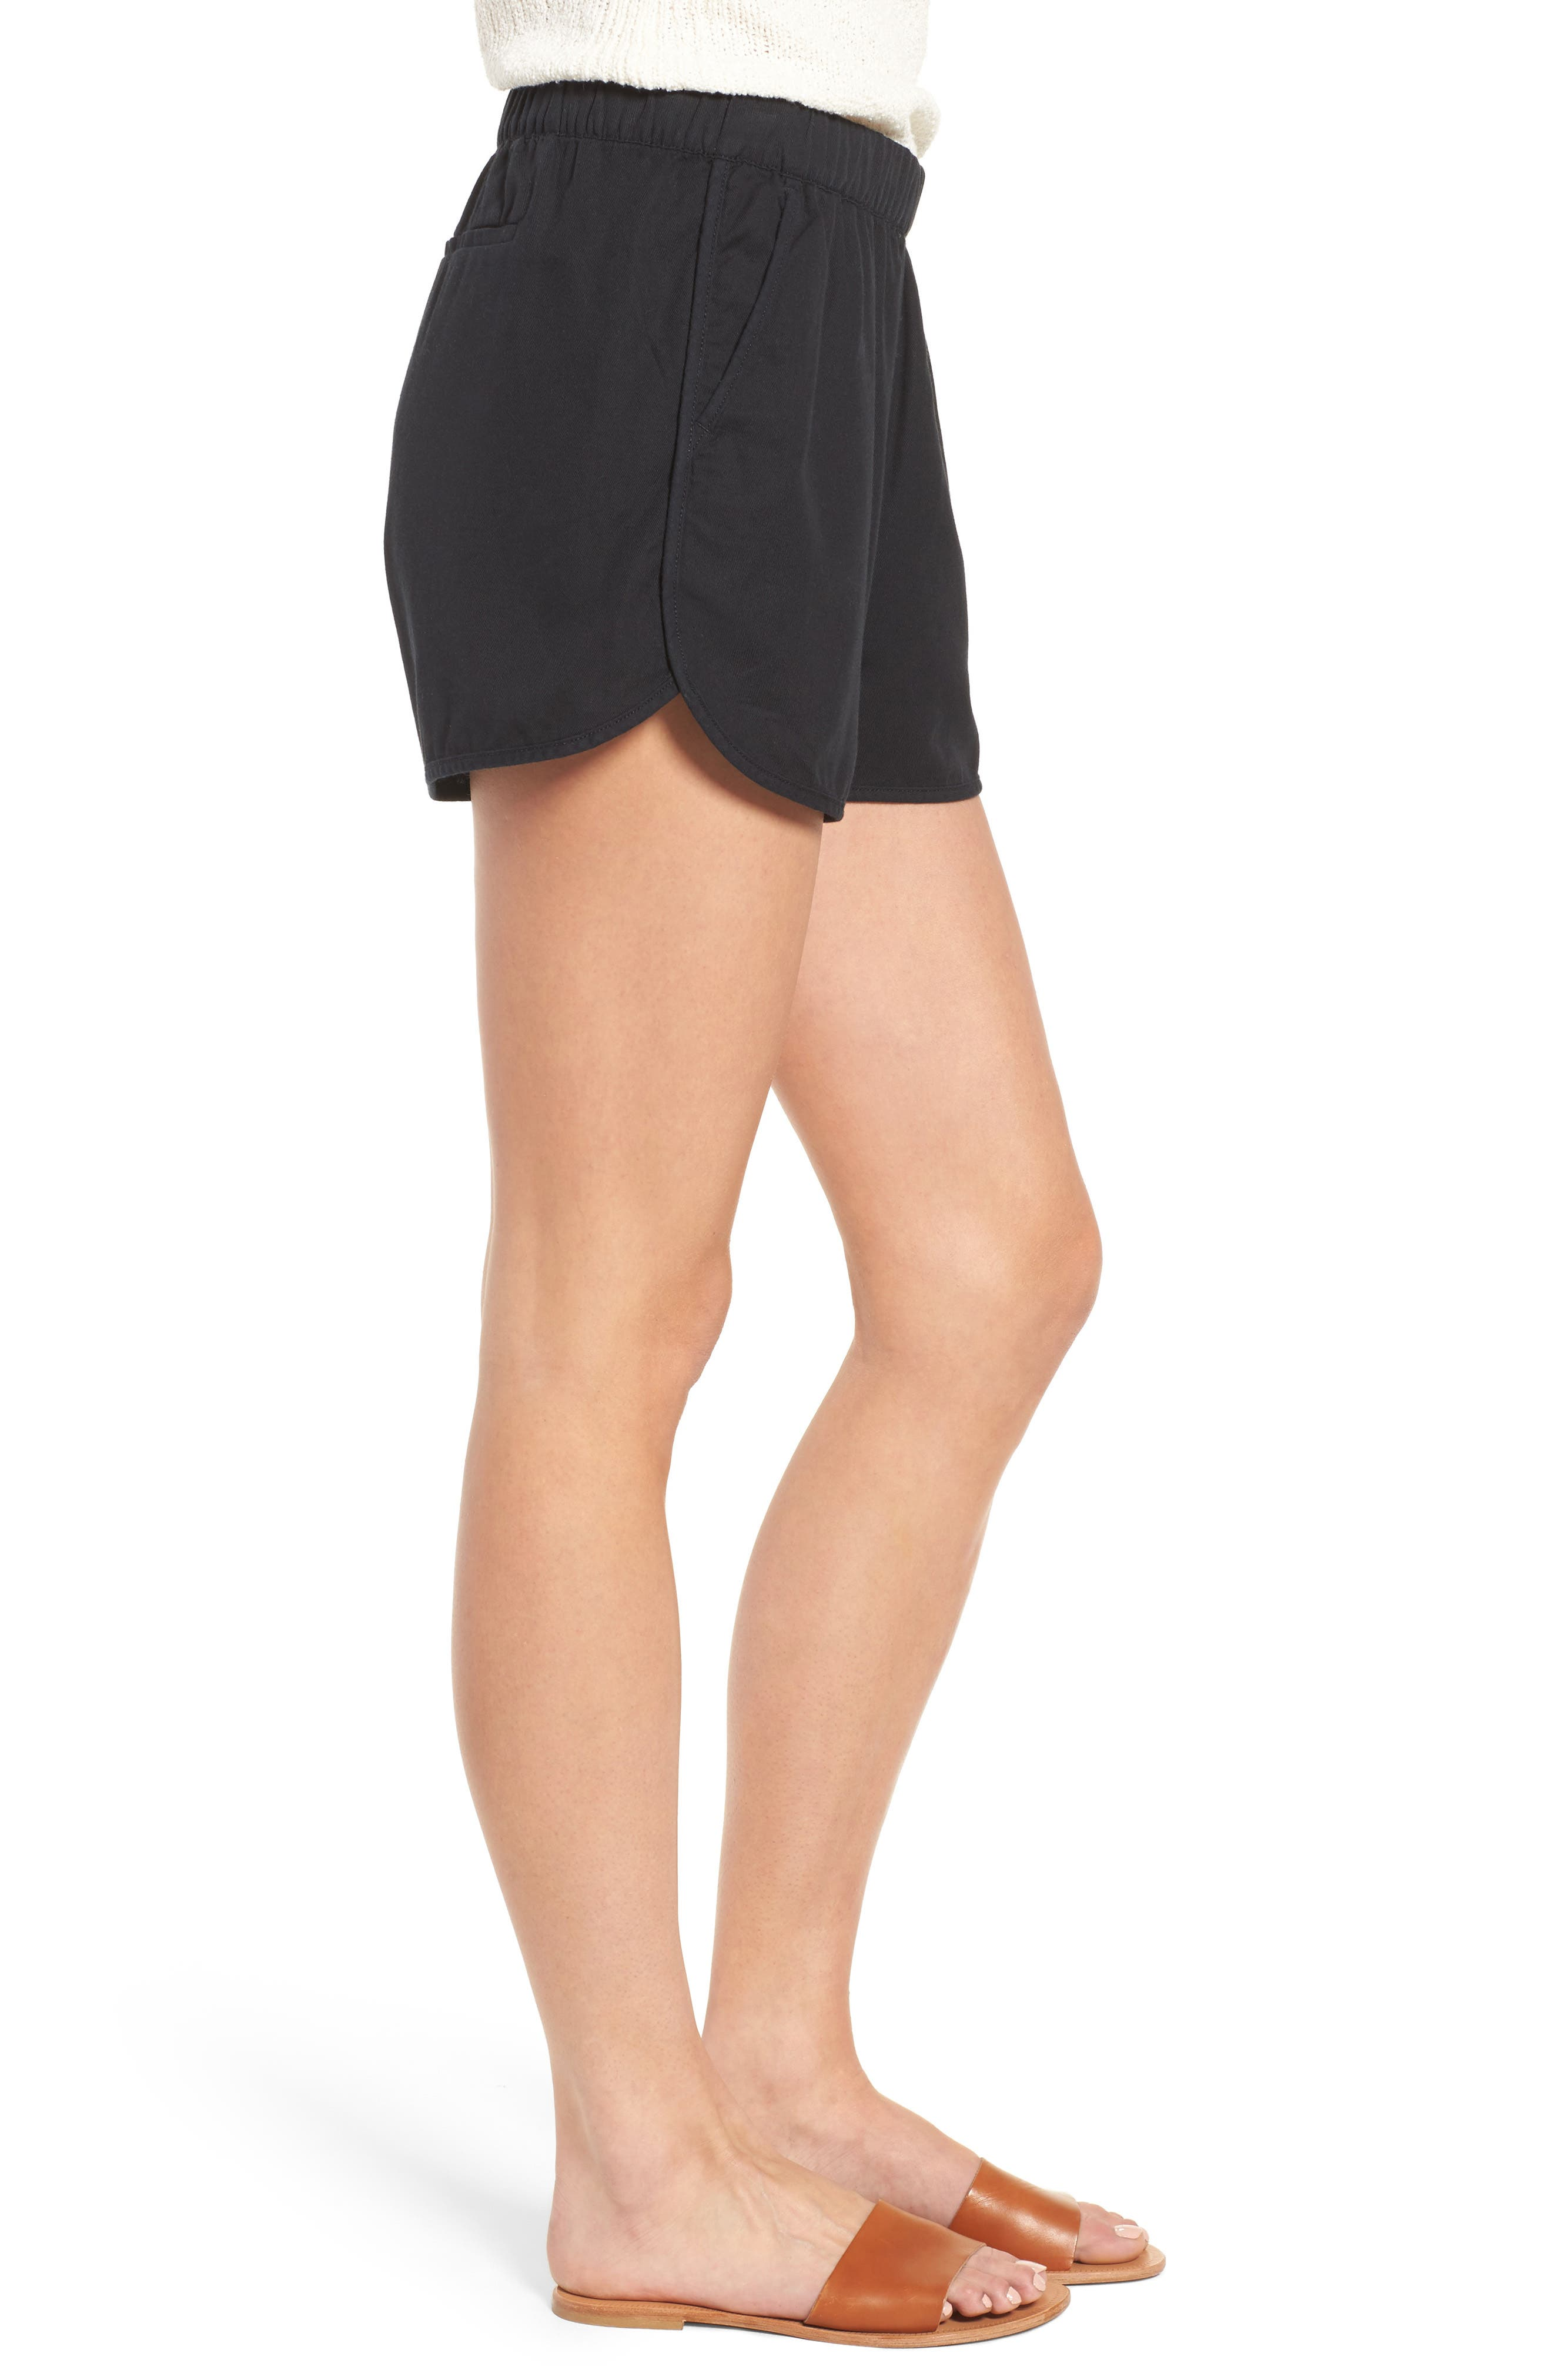 MADEWELL,                             Pull-On Shorts,                             Alternate thumbnail 3, color,                             001